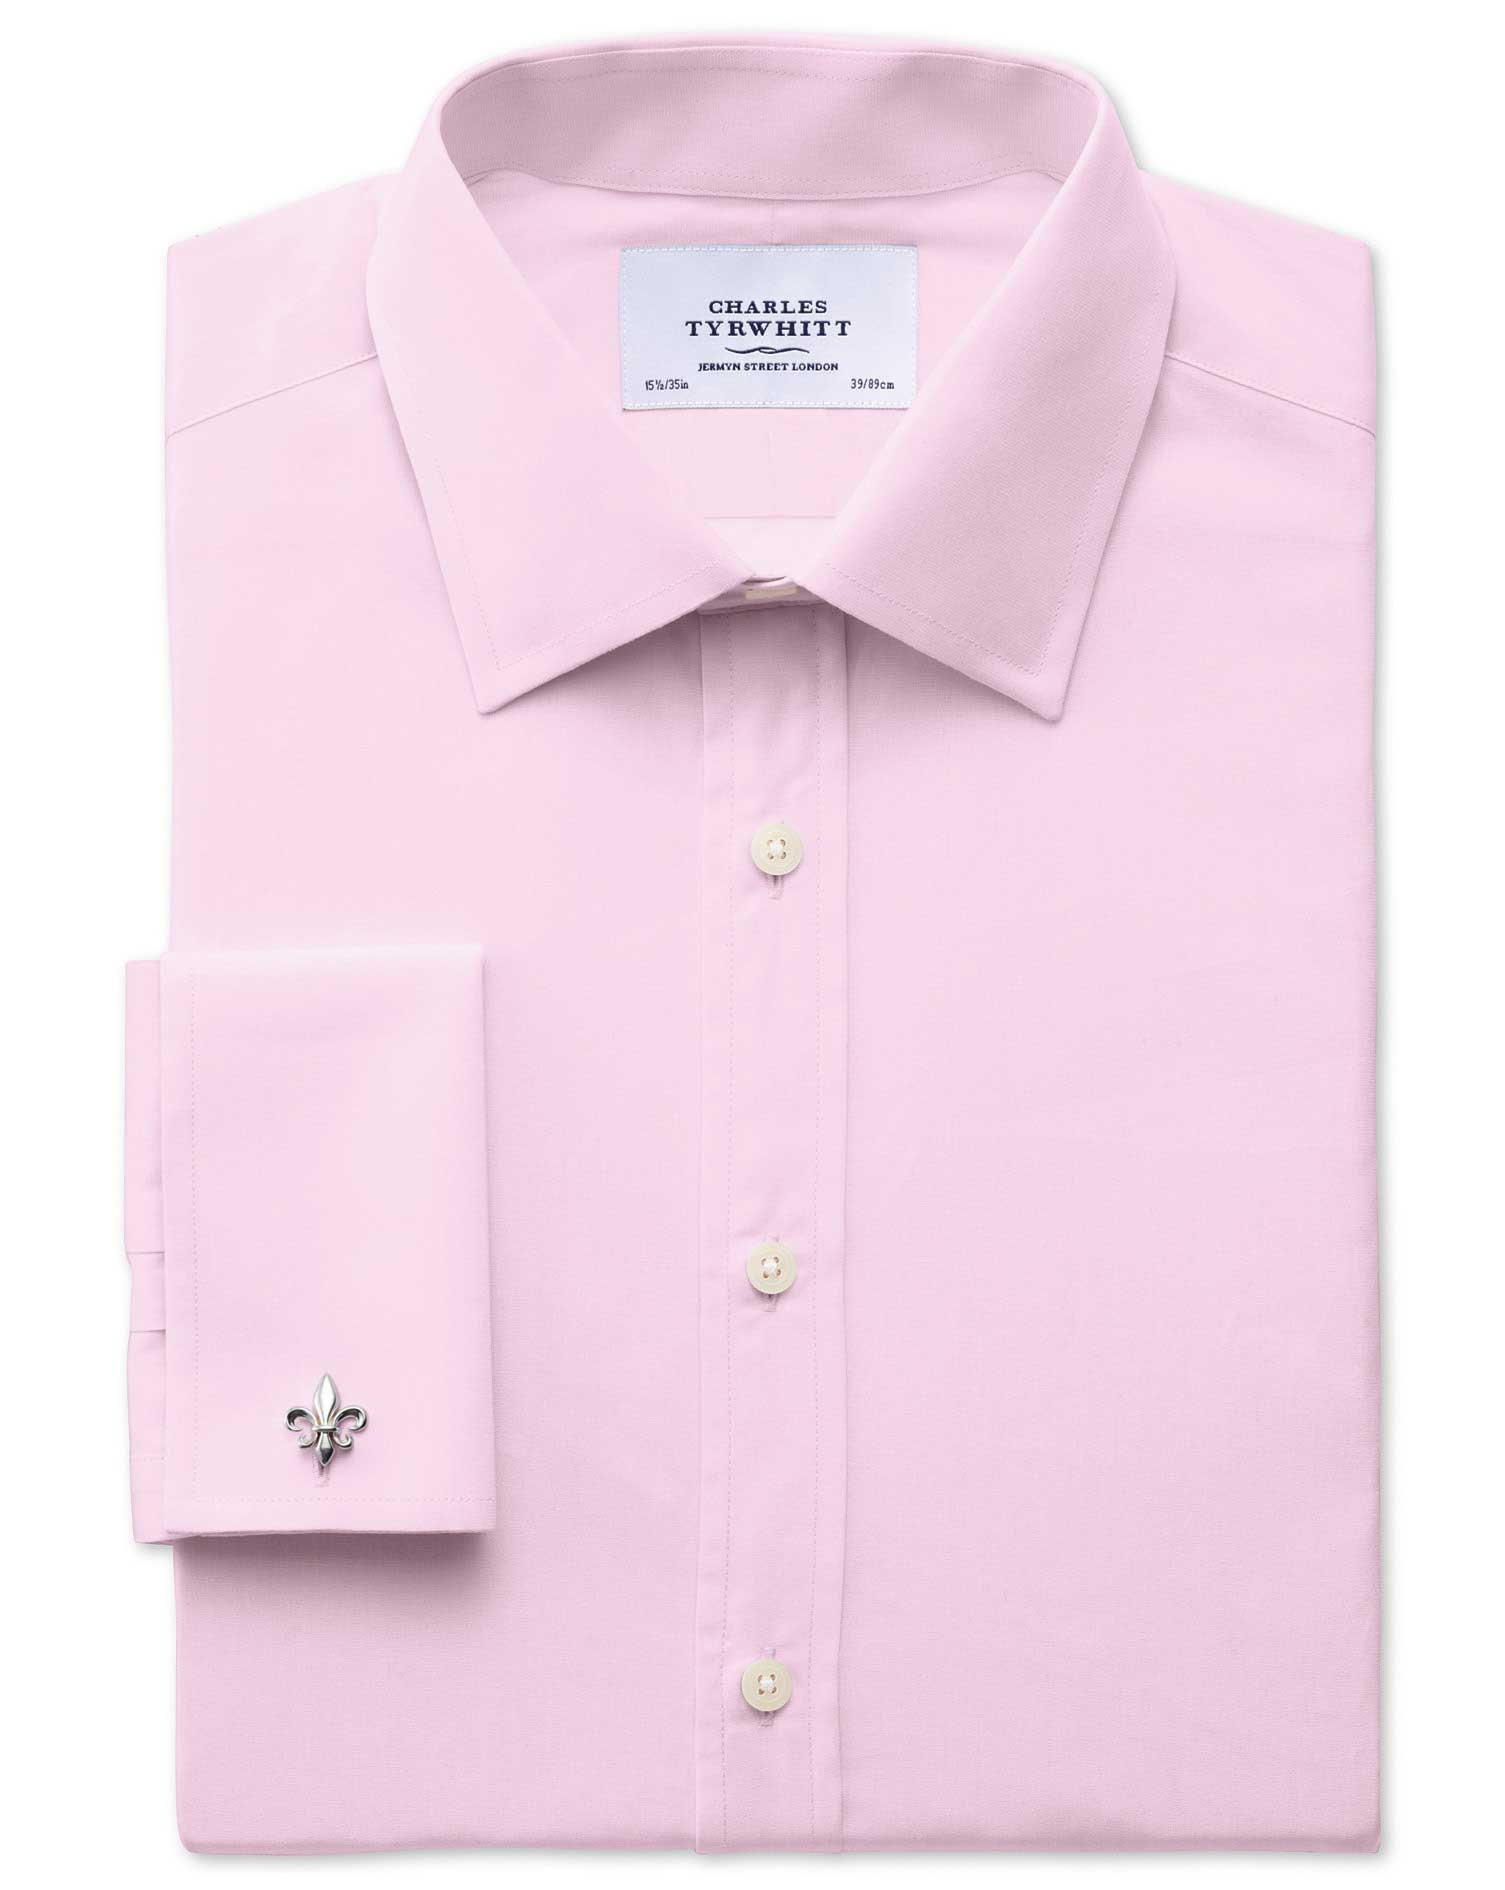 Extra Slim Fit End-On-End Pink Cotton Formal Shirt Single Cuff Size 16.5/38 by Charles Tyrwhitt